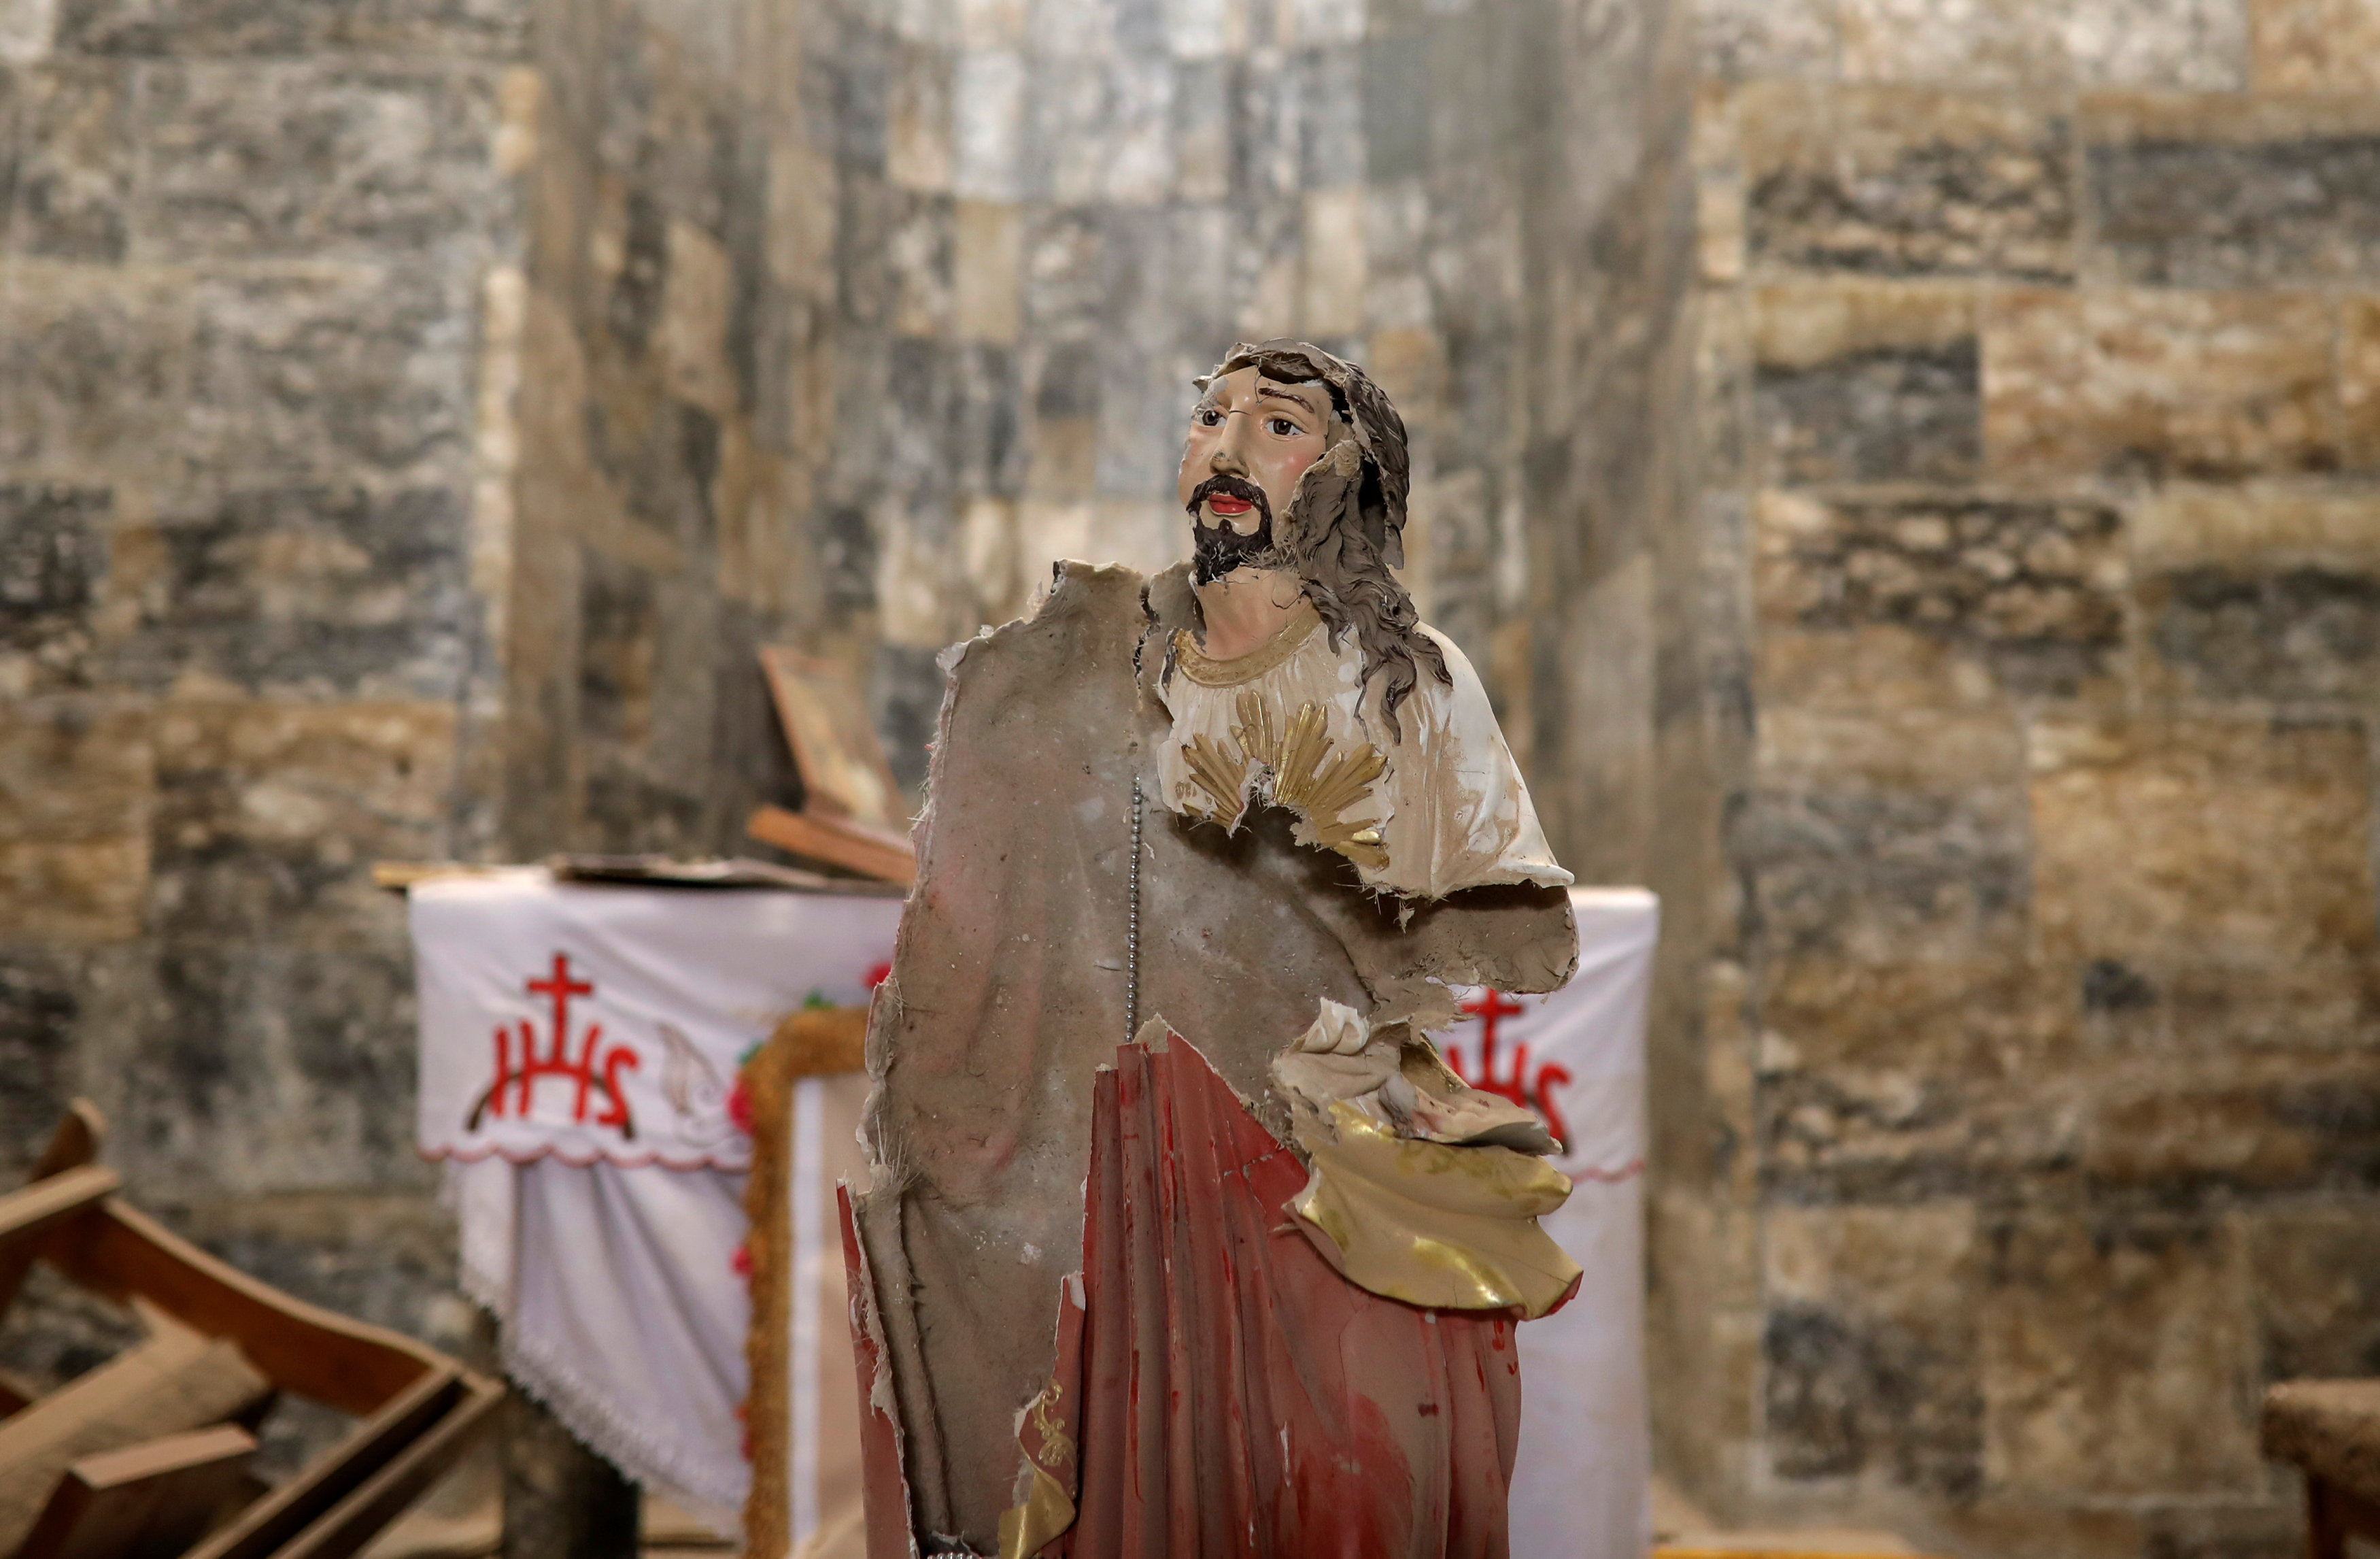 A damaged statue of Jesus Christ is seen inside a church in the town of Qaraqosh, south of Mosul, Iraq, April 11, 2017. REUTERS/Marko Djurica SEARCH